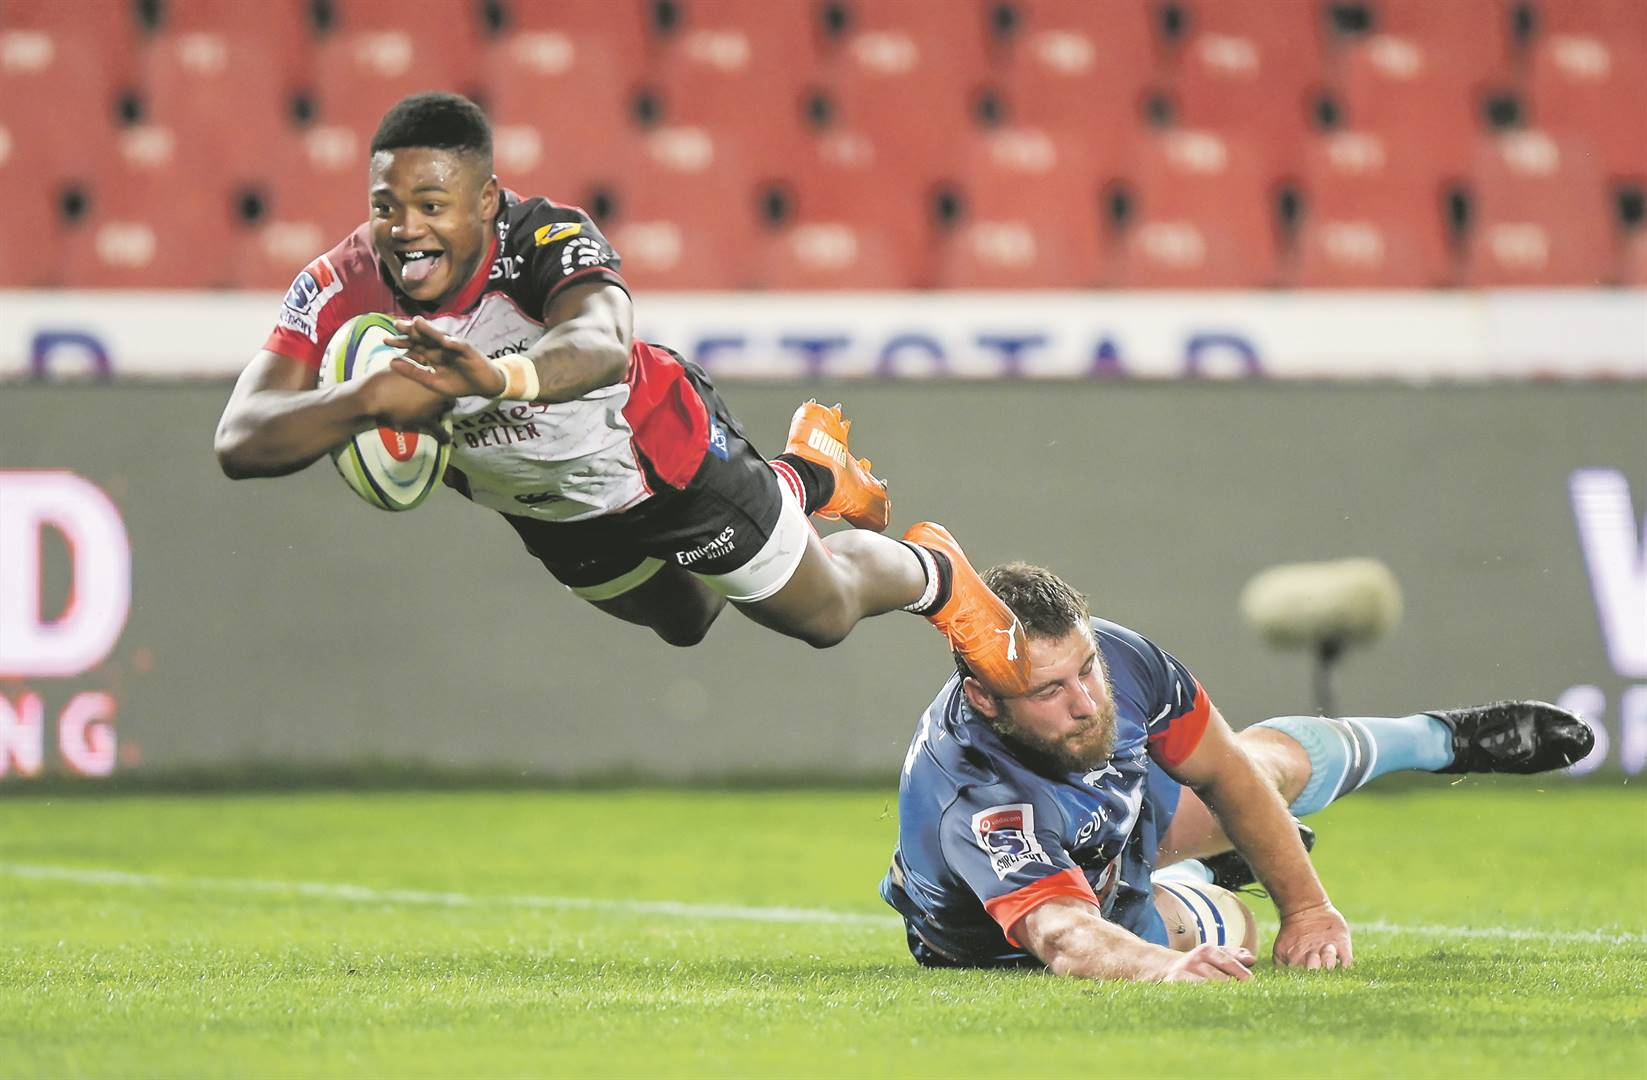 Lions keen to fight Toulouse for in-form Simelane's signature | Citypress